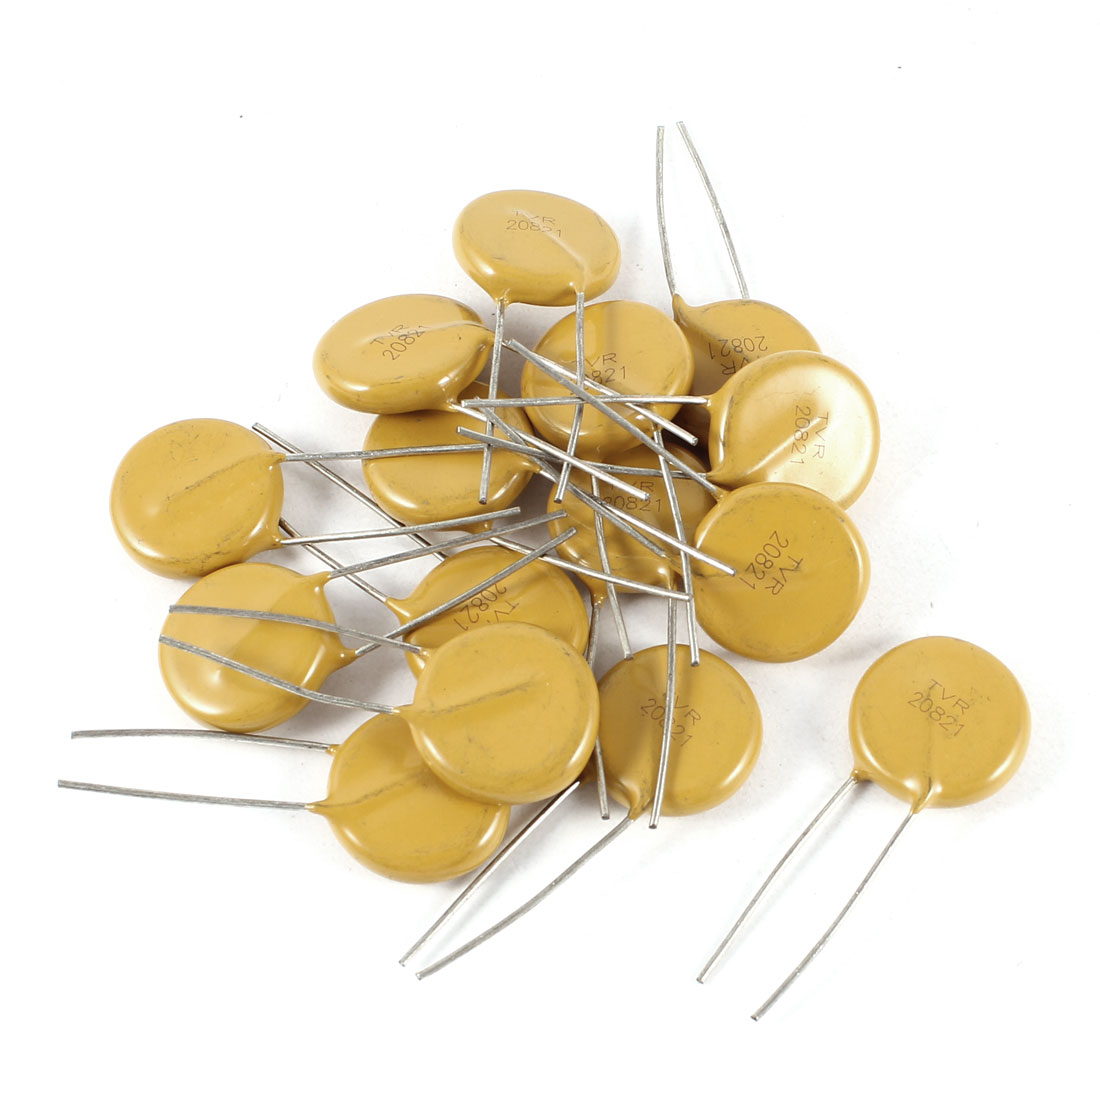 15 Pcs Radial Lead Voltage Dependent Resistor Varistors 820V TVR20821